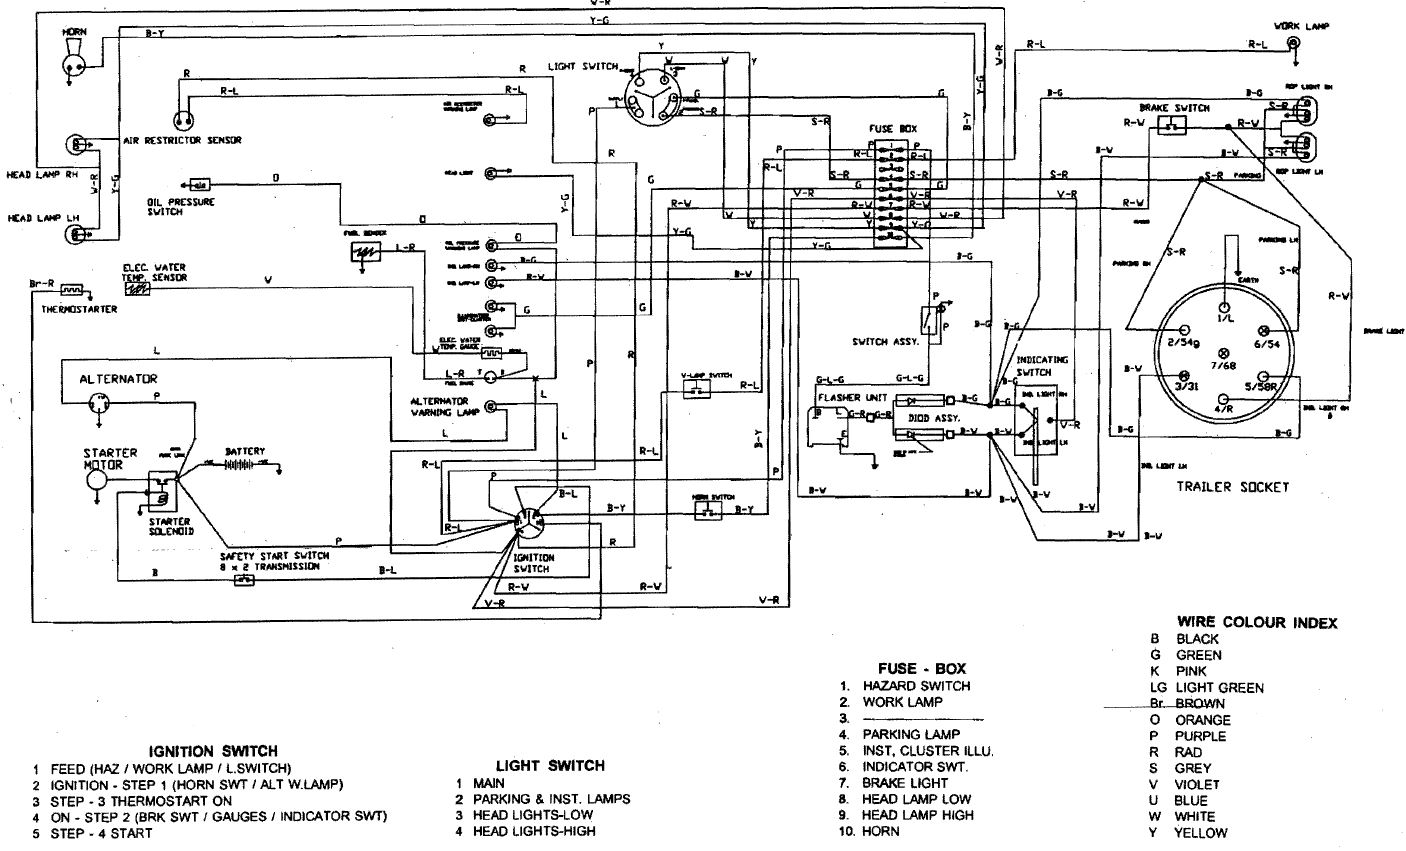 hight resolution of belarus 250as wiring diagram wiring diagram for you wiring schematics ppt belarus wiring schematic